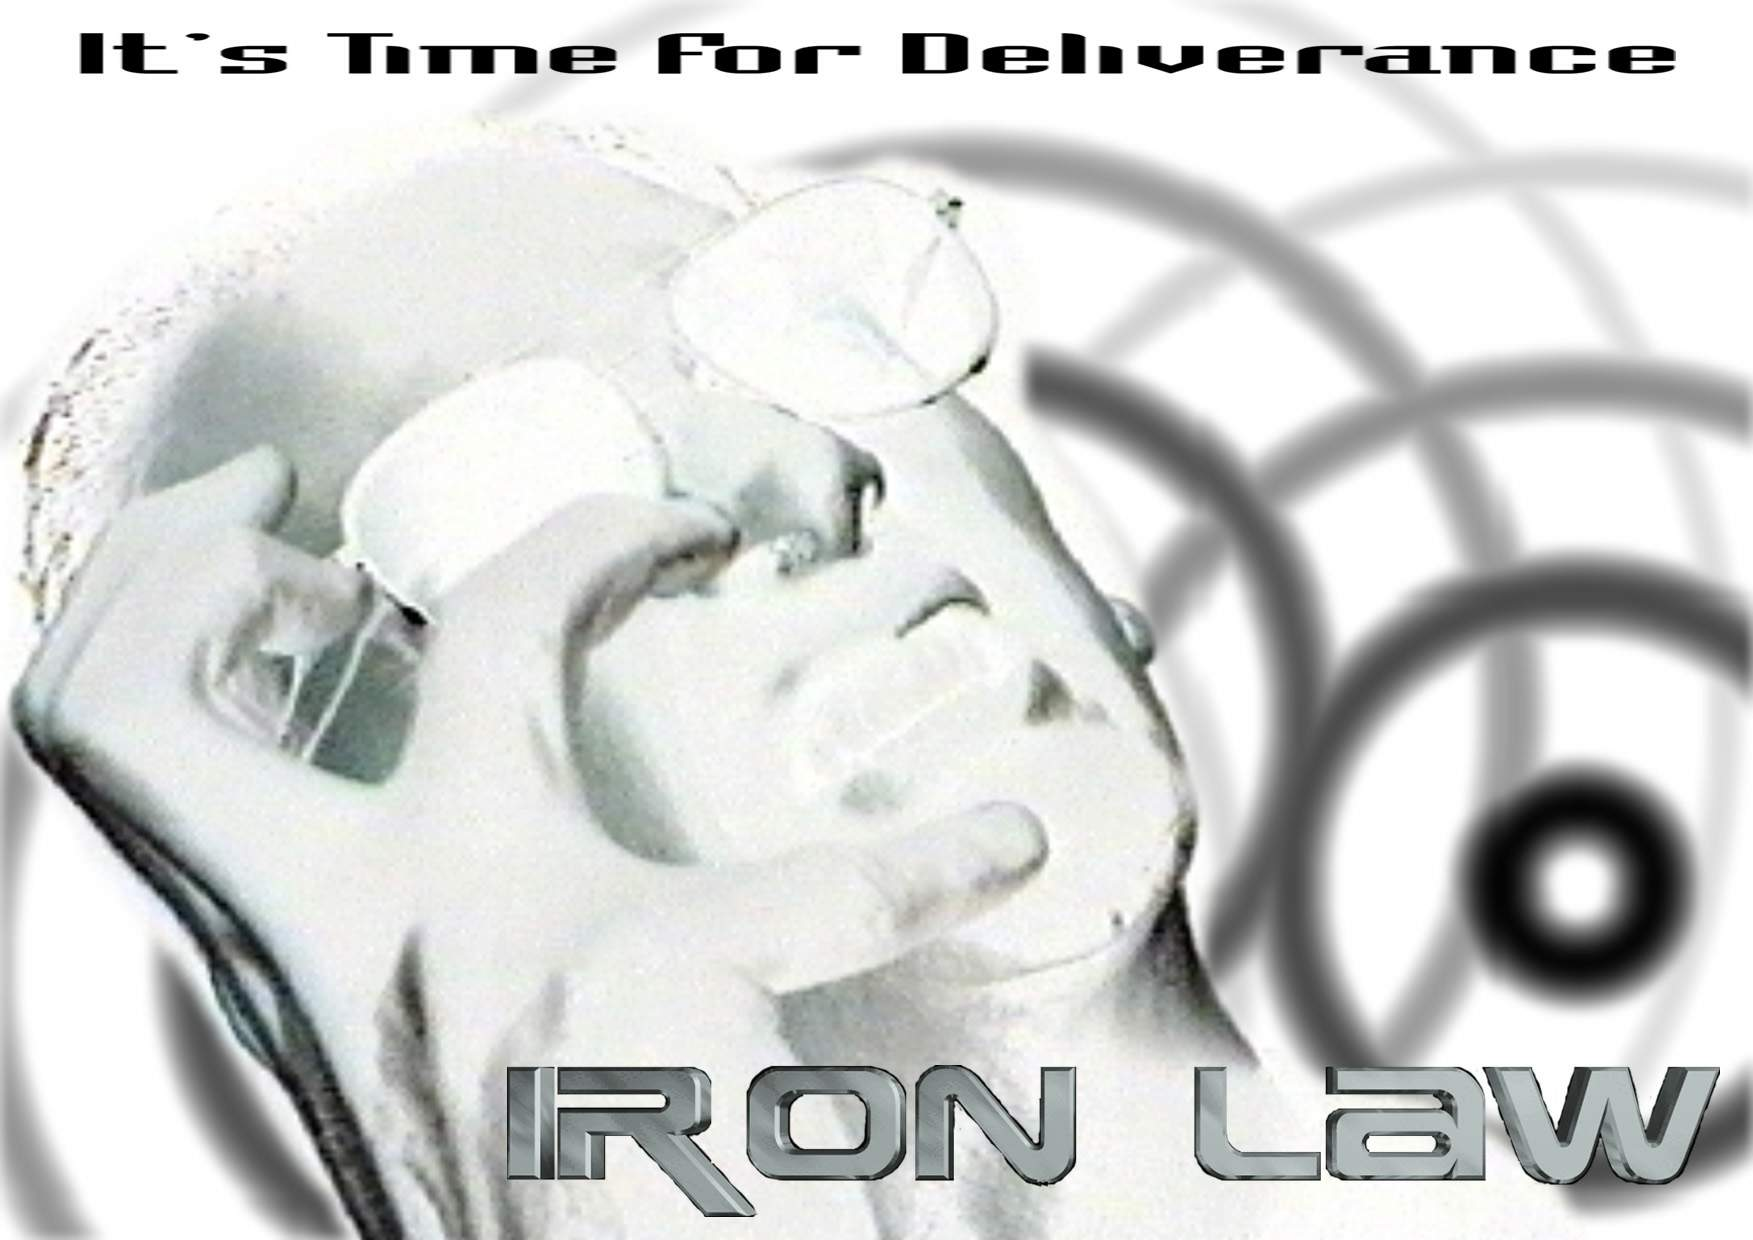 Tim Harris Website Graphics Gallery - Iron Law poster